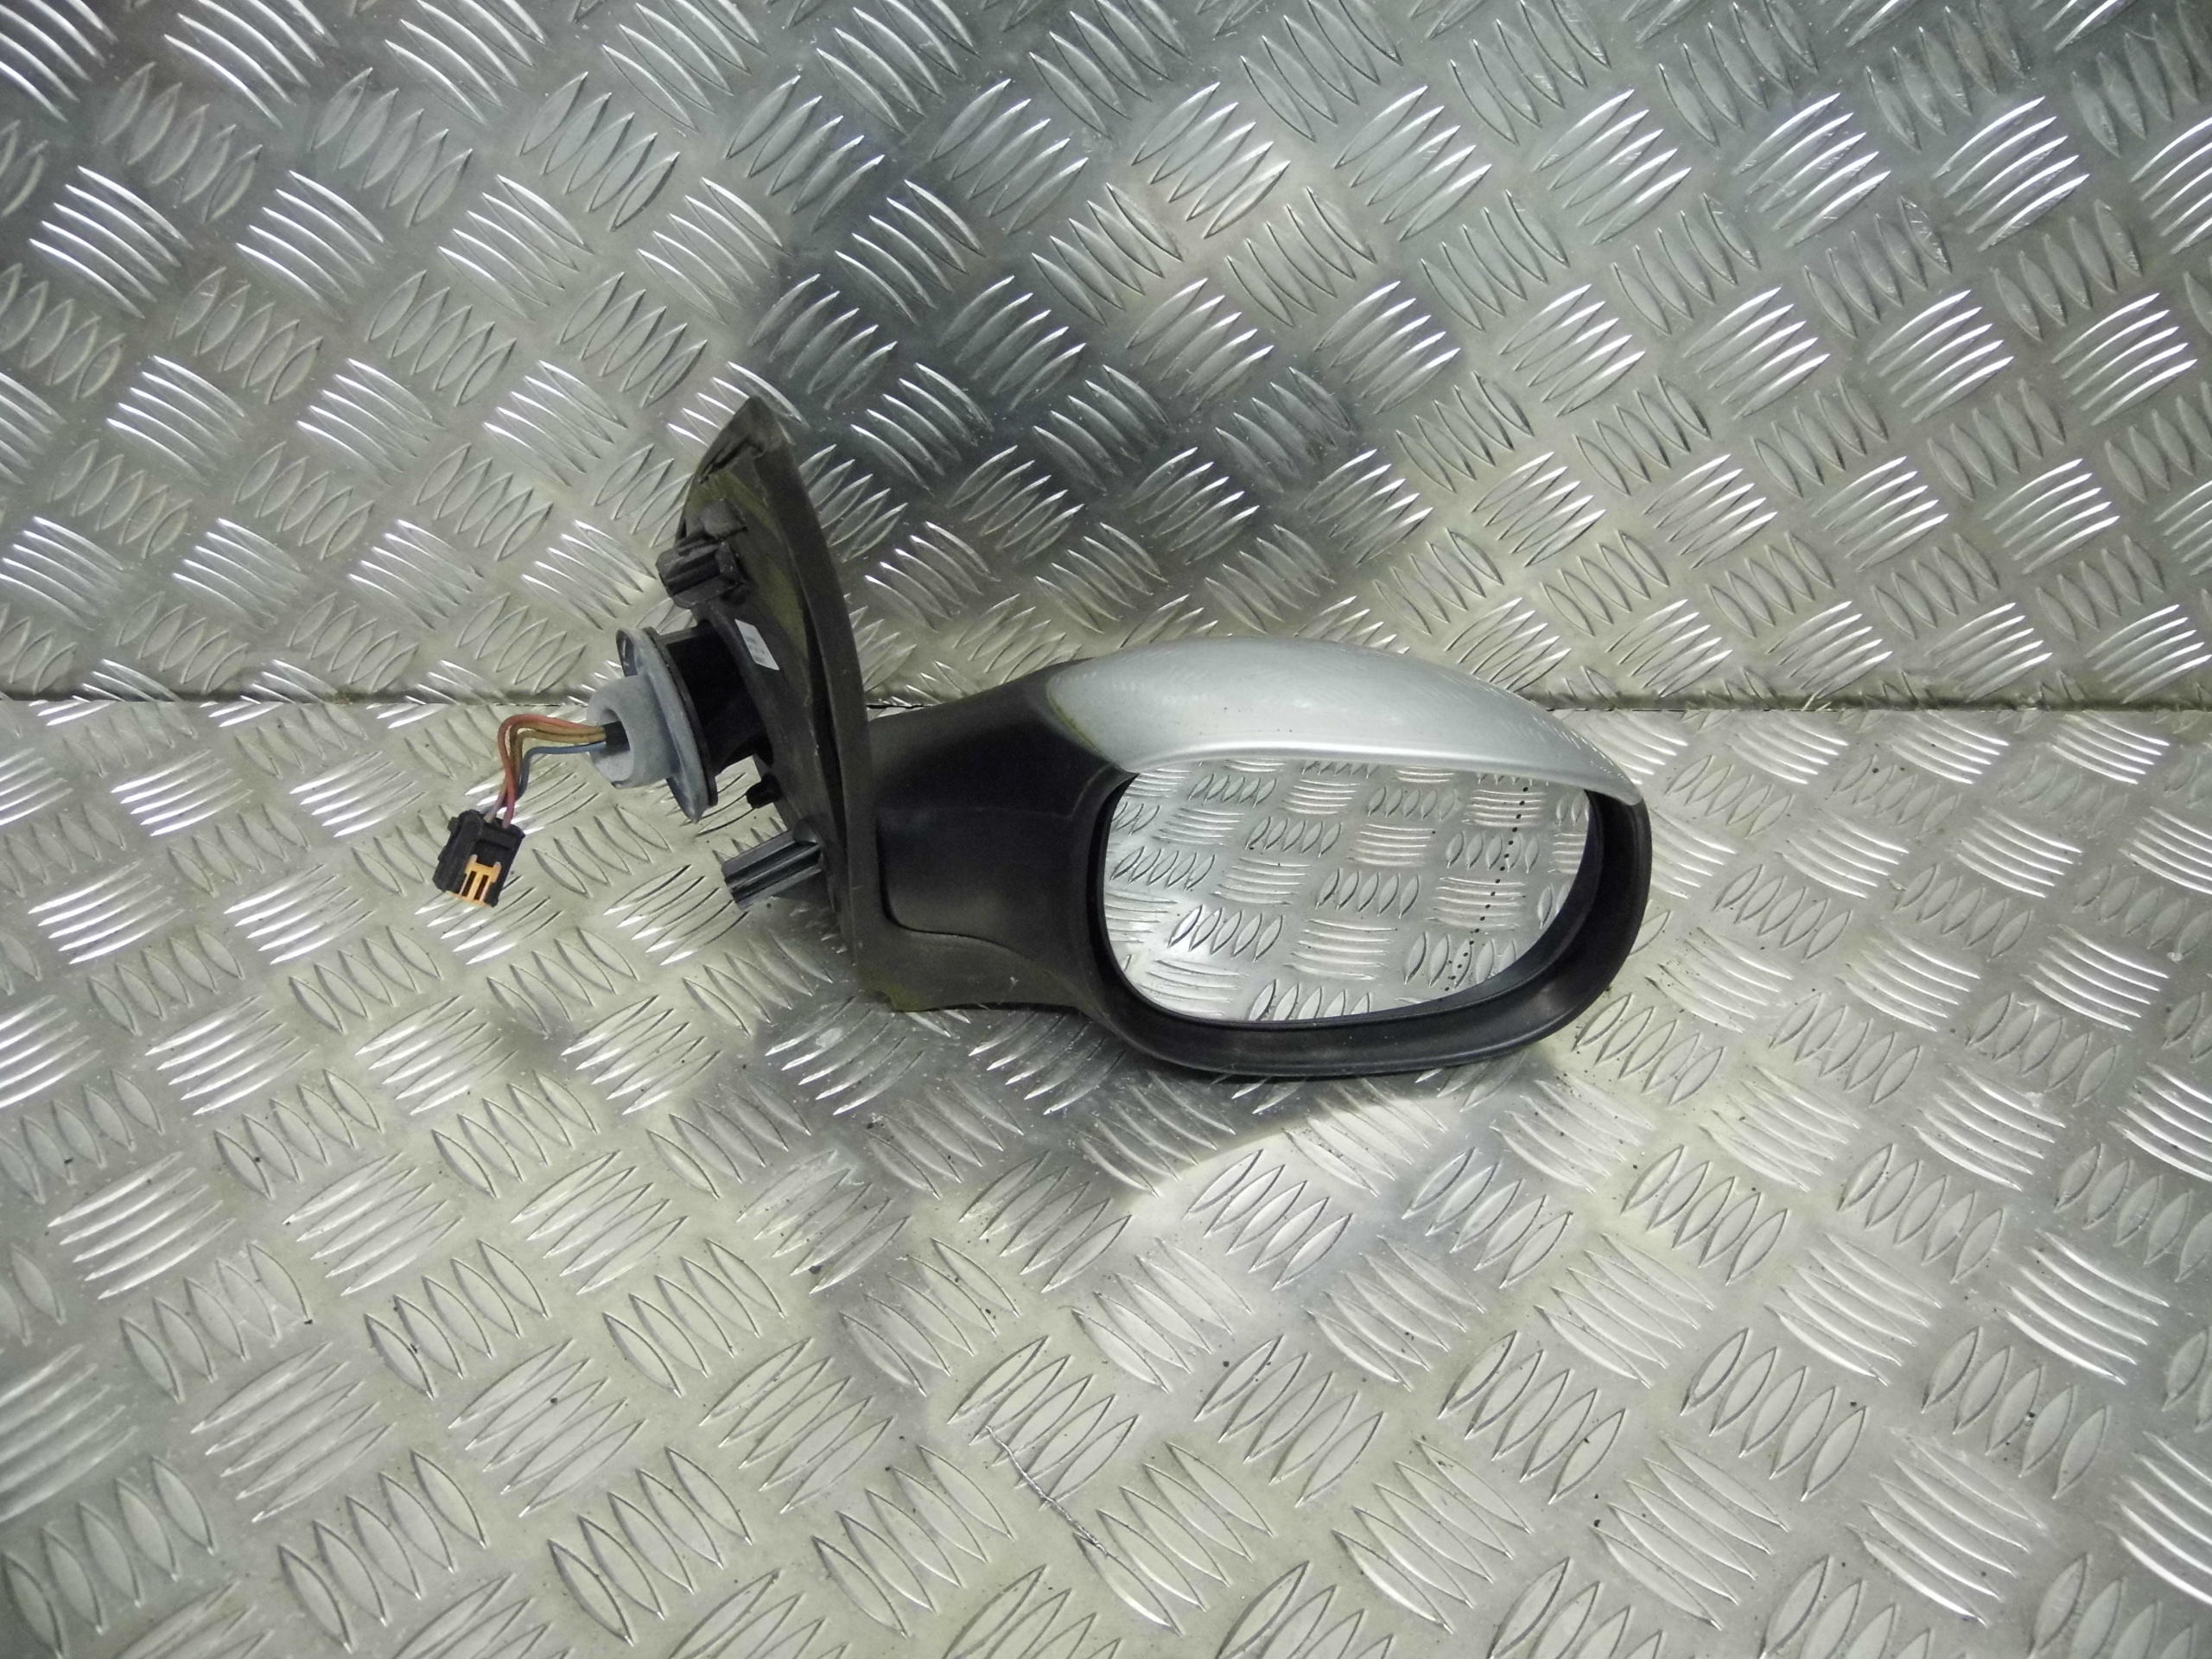 Used 2004 Peugeot 206 Hatchback Under Bonnet Fuse Box Drivers Side Silver Electric Wing Mirror Front View